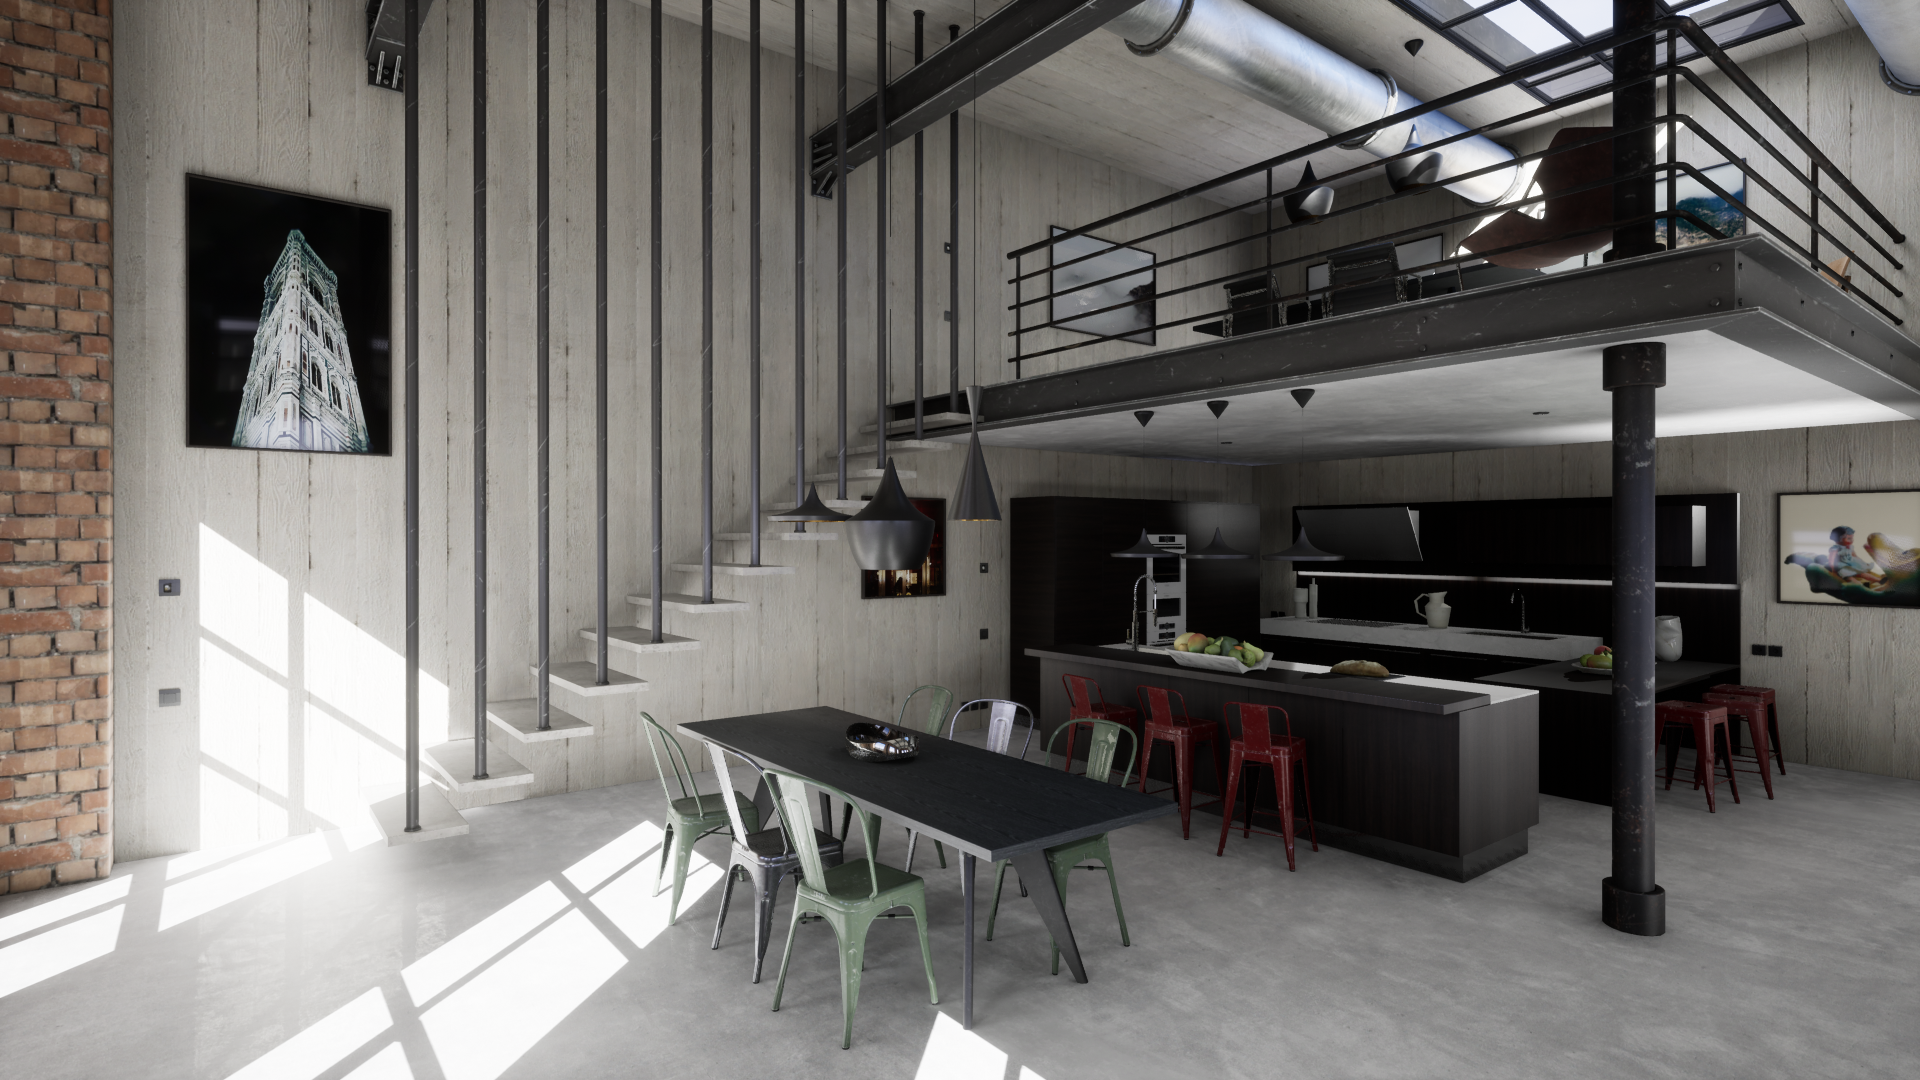 Unreal Engine 4 Architectural Visualization